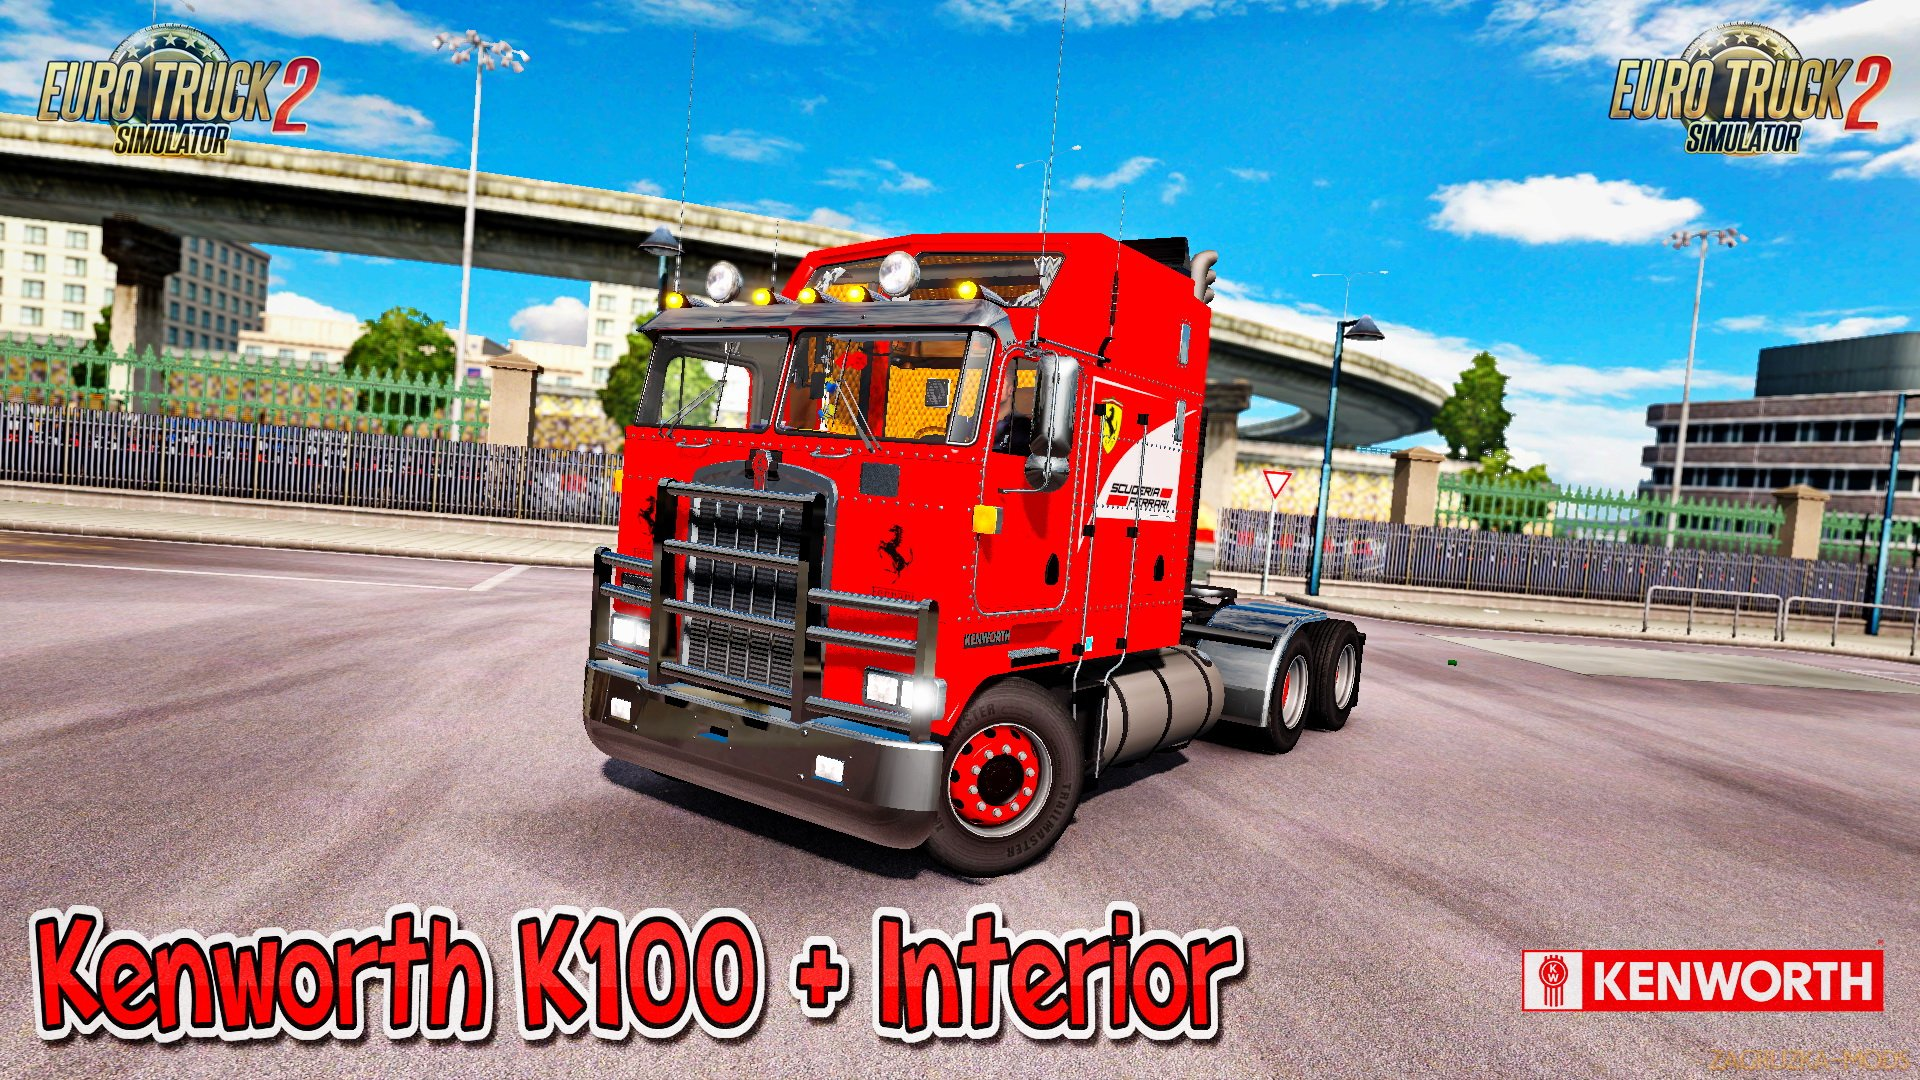 Kenworth K100 + Interior v1.0 (1.26.x) for ETS 2